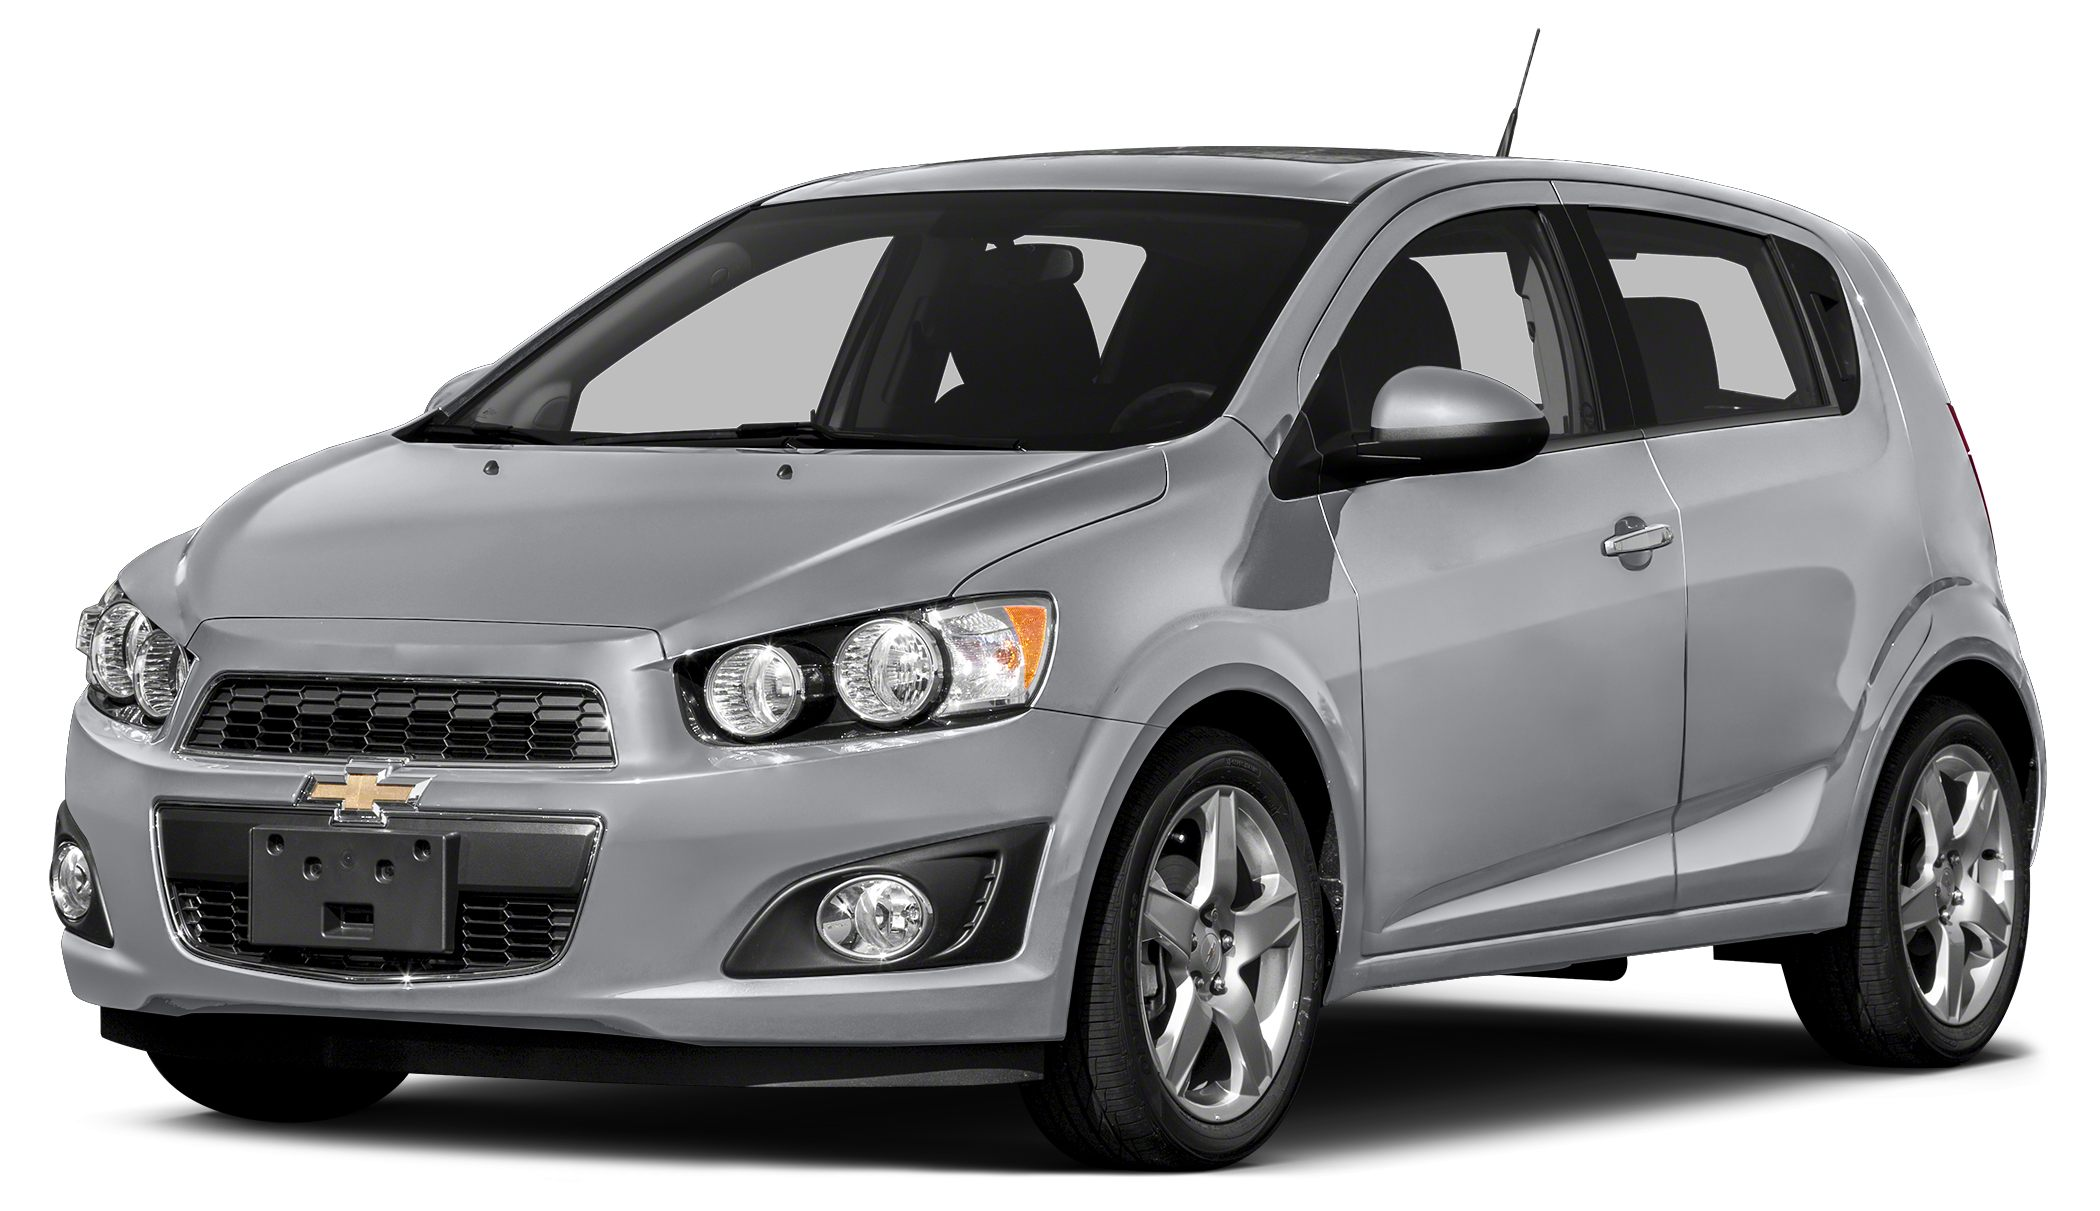 2014 Chevrolet Sonic LTZ Come experience a whole new way of buying pre-owned At Paul Masse we st